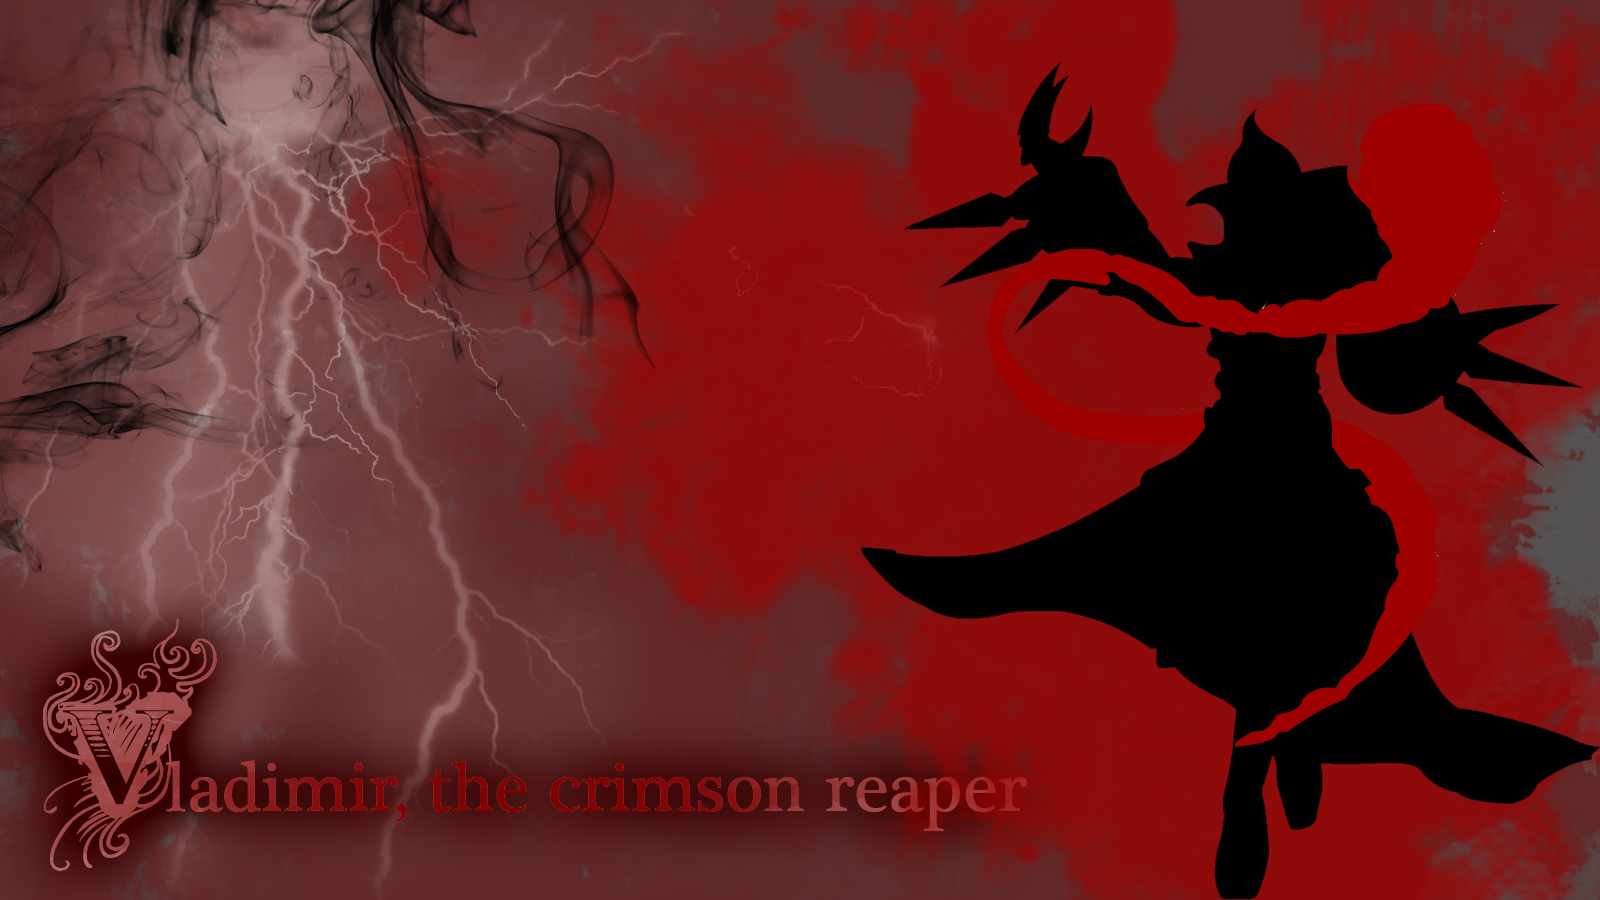 vladimir_the_crimson_reaper_by_crimsonbloodoath-d5do0ci